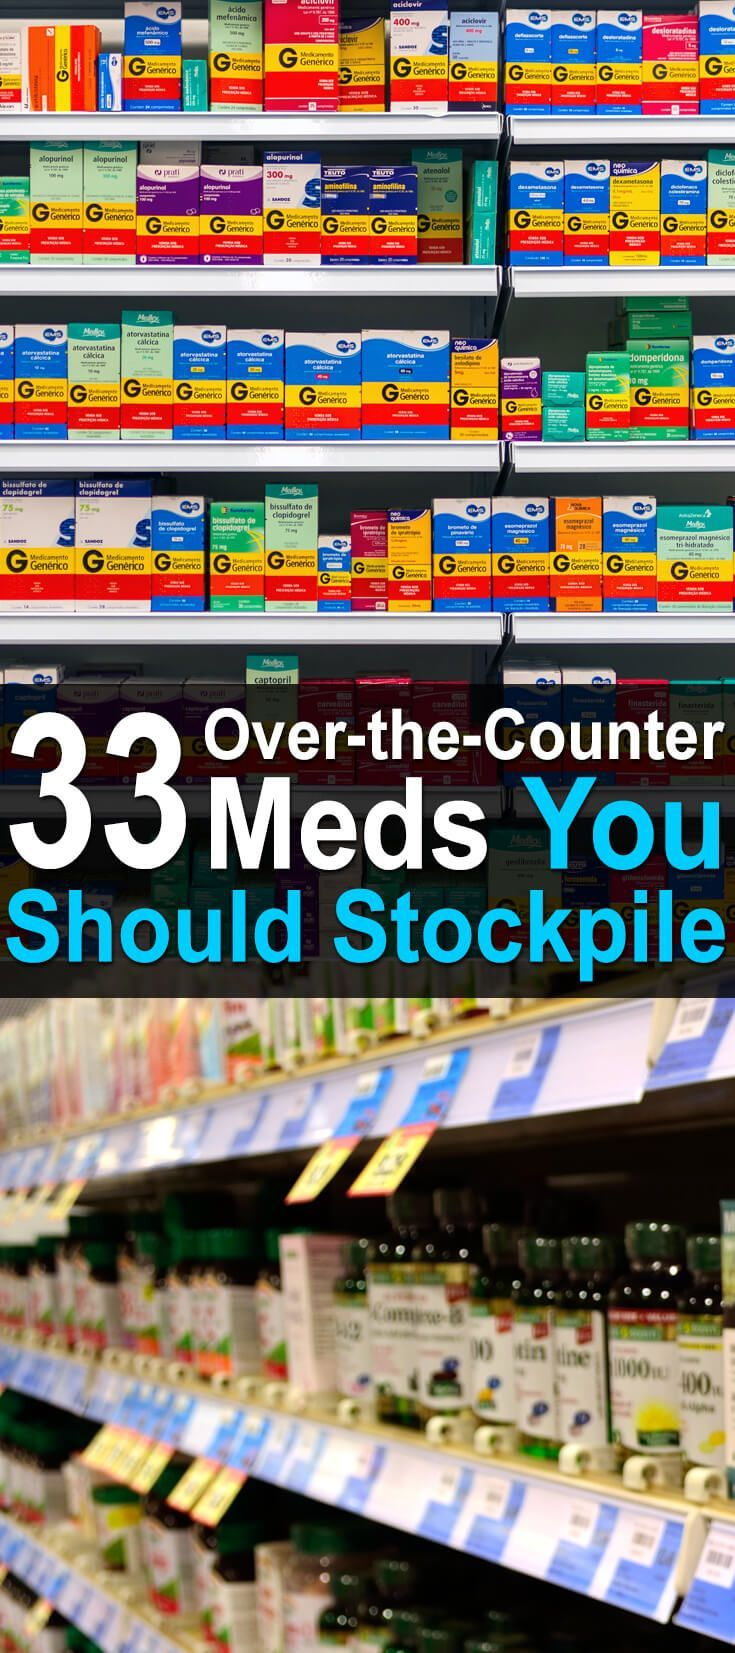 33 Over-the-Counter Meds You Need to Stockpile. The list below is not a comprehensive list of all the medical supplies you should stockpile. Rather, it's a list of the most popular OTC medications that you can take orally (or in some cases, topically). #Urbansurvivalsite #OTCmeds #Medicationtostockpile